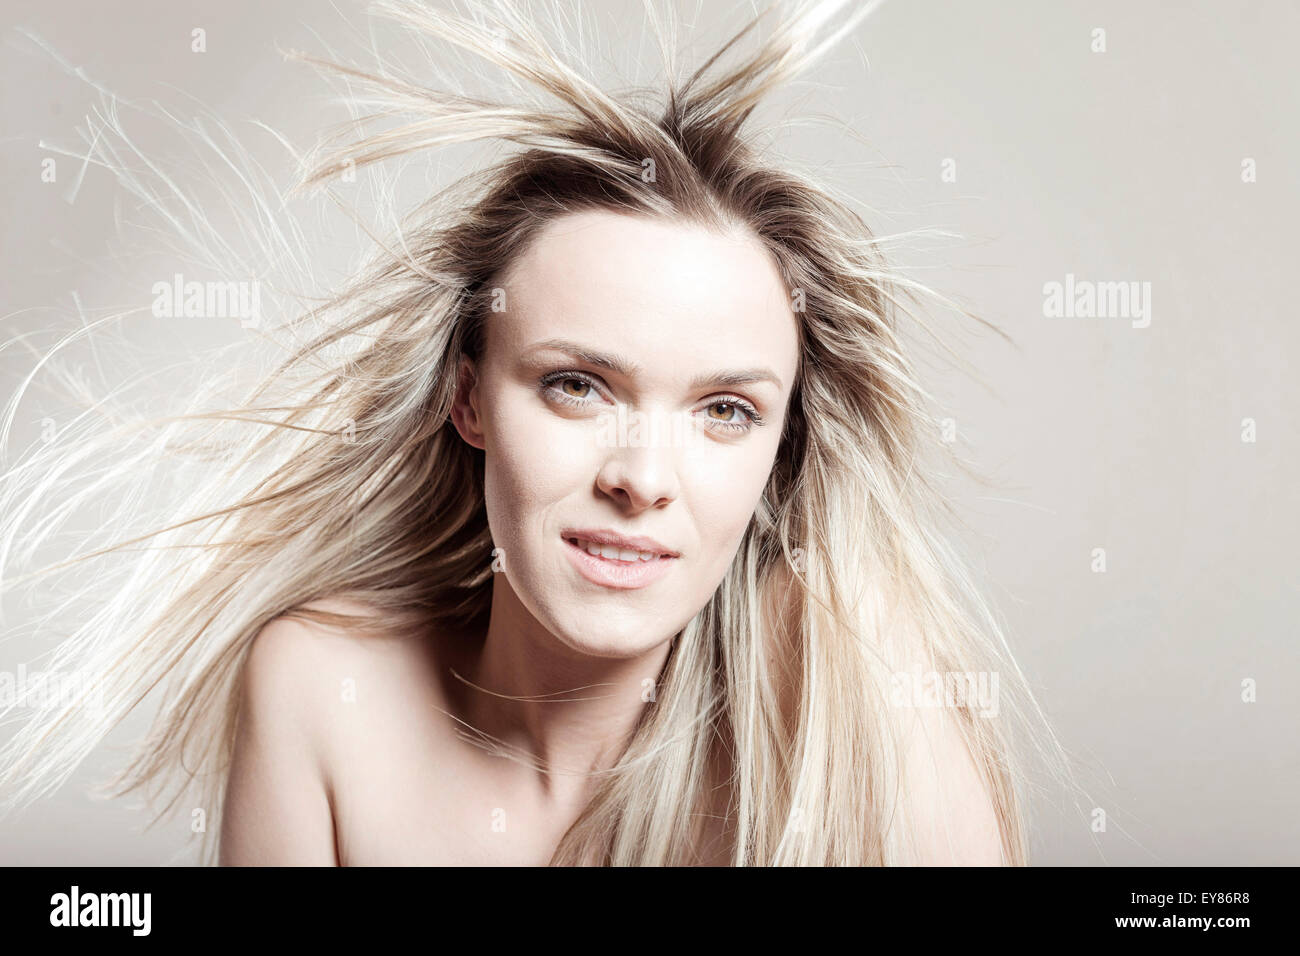 Young woman with tousled hair - Stock Image